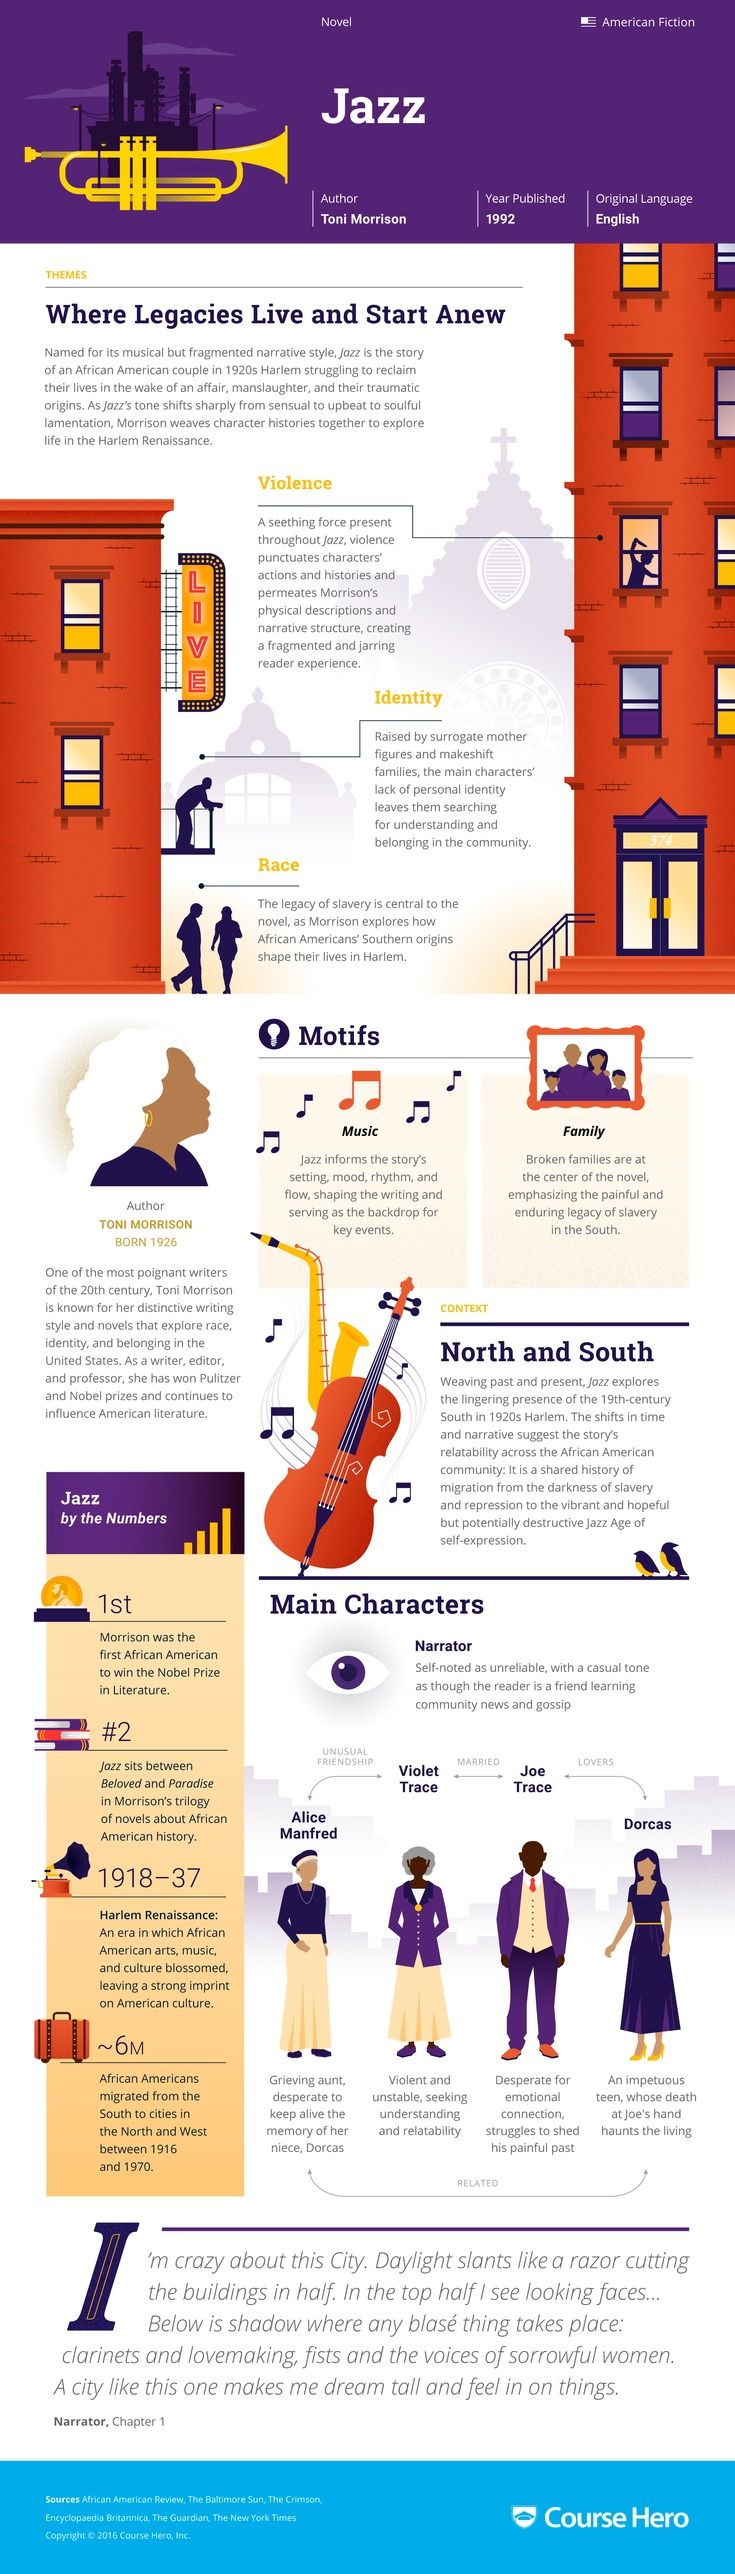 This 'Jazz' infographic from Course Hero is as awesome as it is helpful. Check it out!